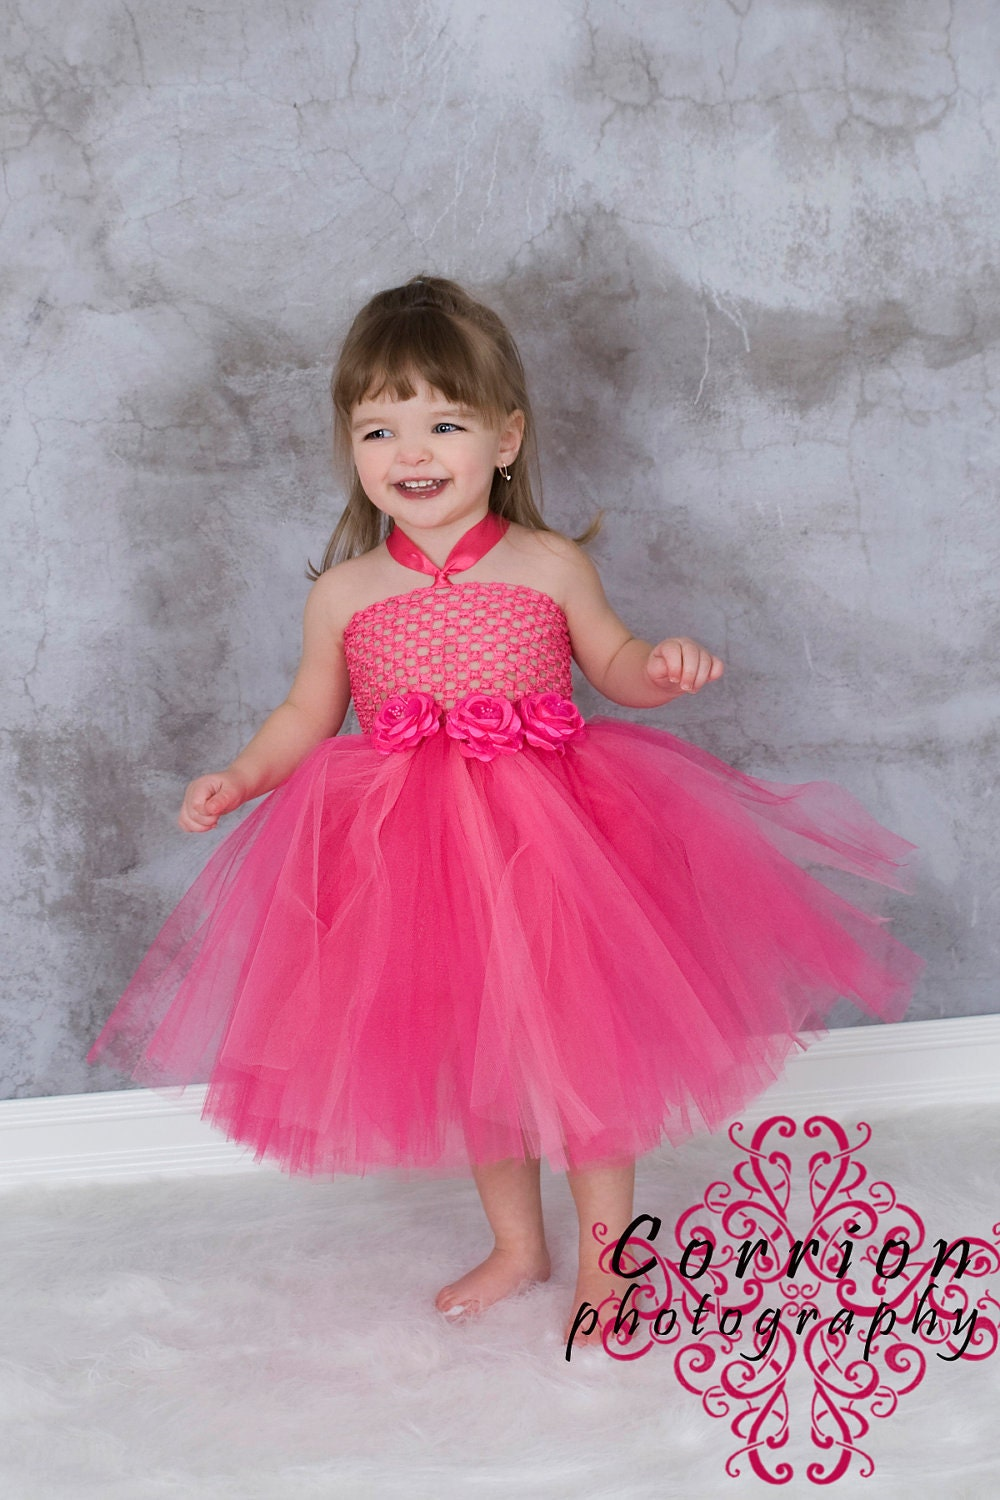 Tutu Skirt for Kids - Ballet Basic Tutu for Toddler or Little Girl, 3-Layer Tulle Chiffon, Ballet Recital Dress, Princess Party Outfit, Halloween Costume See Details Product - Interchangeable 2-in-1 Tutu Dress, 2-Piece Set (Toddler Girls).